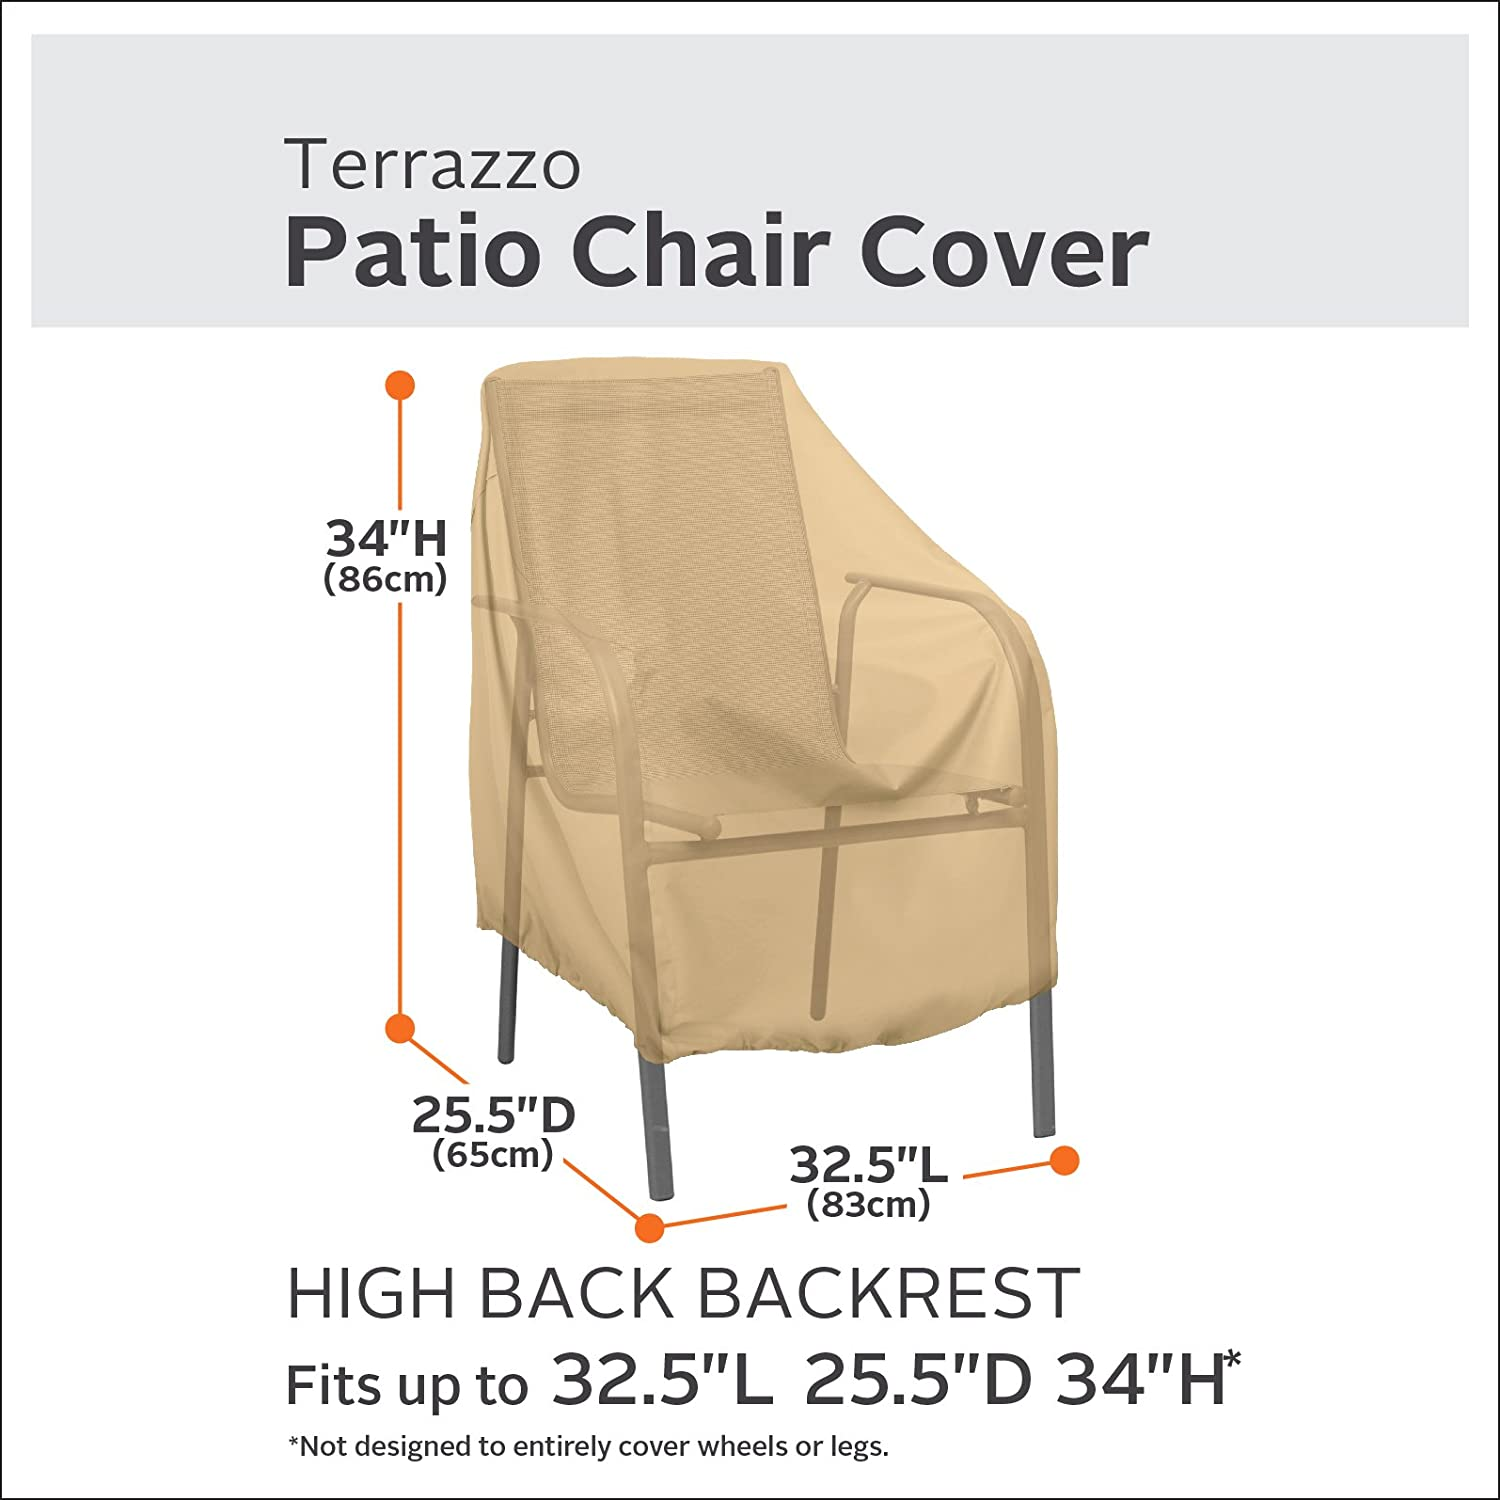 Amazon.com : Classic Accessories Terrazzo High Back Patio Chair Cover   All  Weather Protection Outdoor Furniture Cover (58932 EC) : Patio Furniture  Covers ...